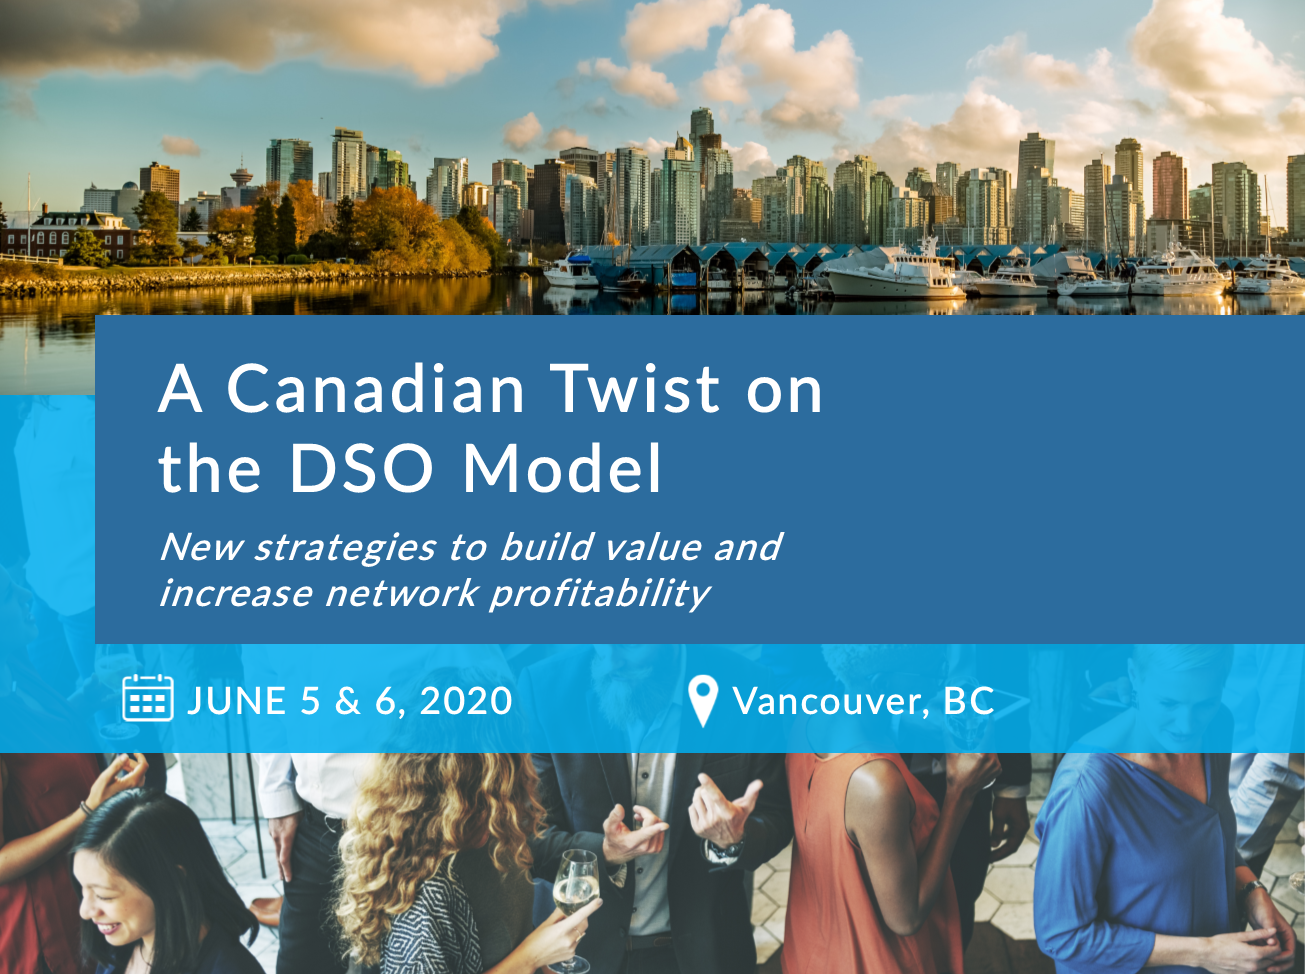 A Canadian Twist on the DSO Model